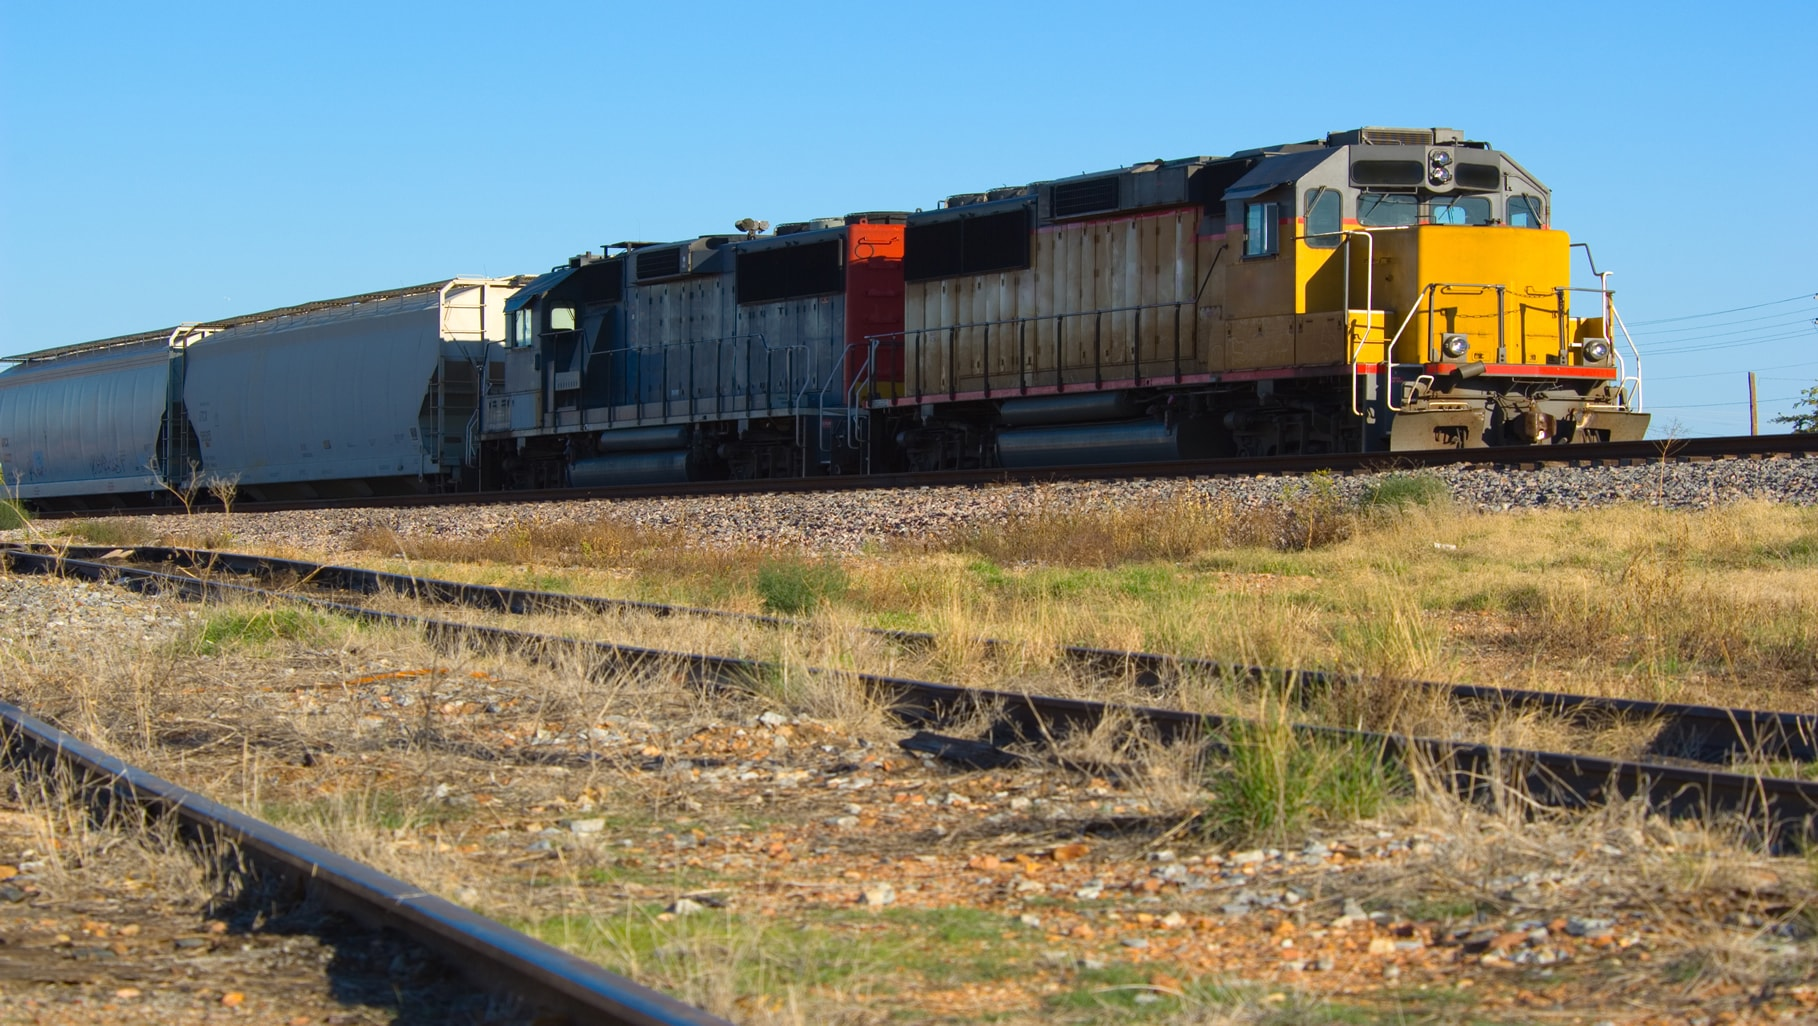 IOC transports agricultural and industrial chemicals by rail.